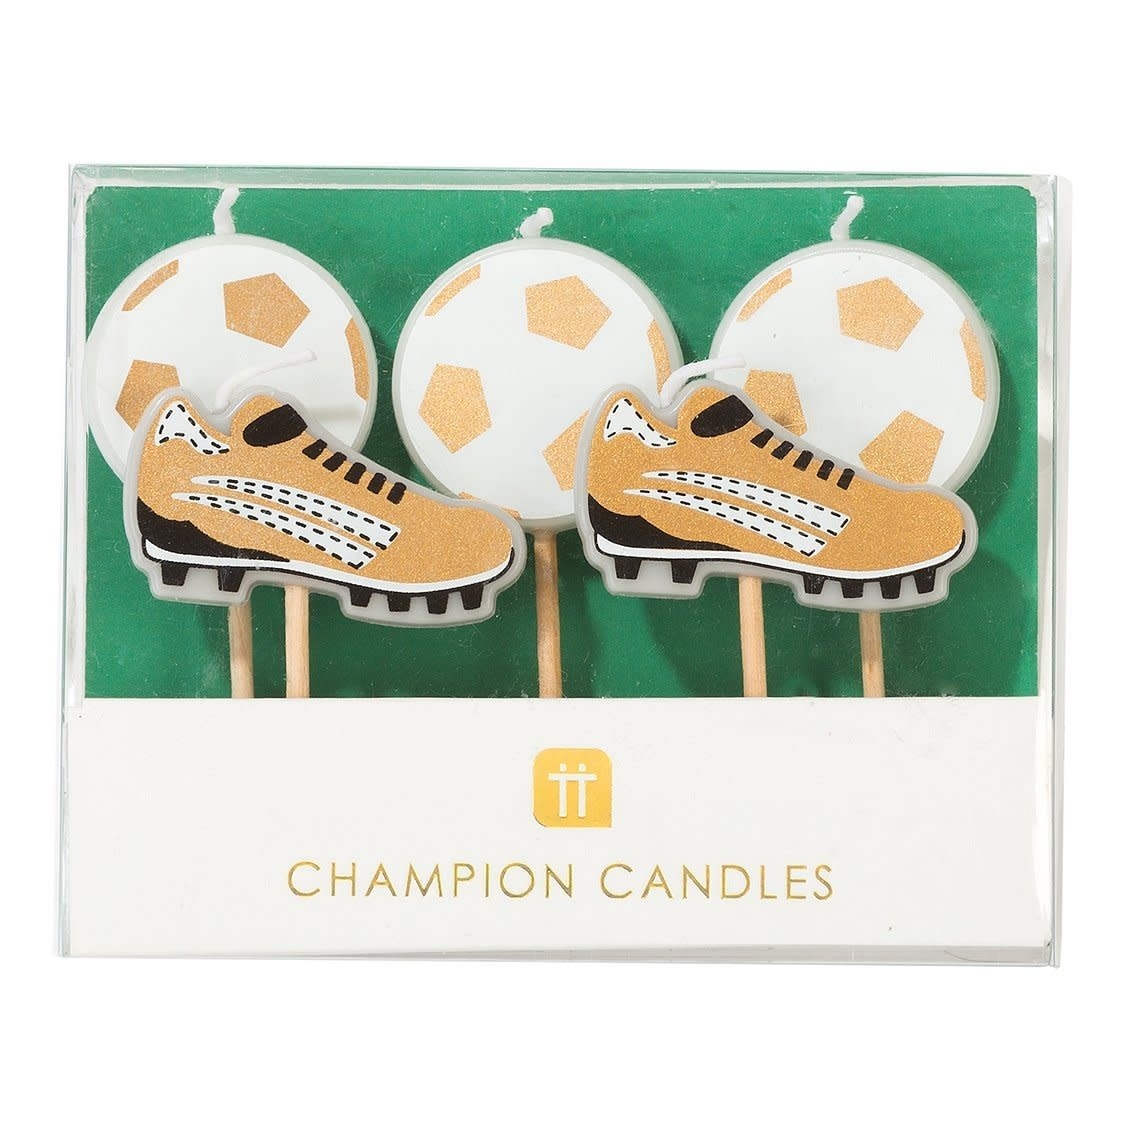 TT Party Champions Candles